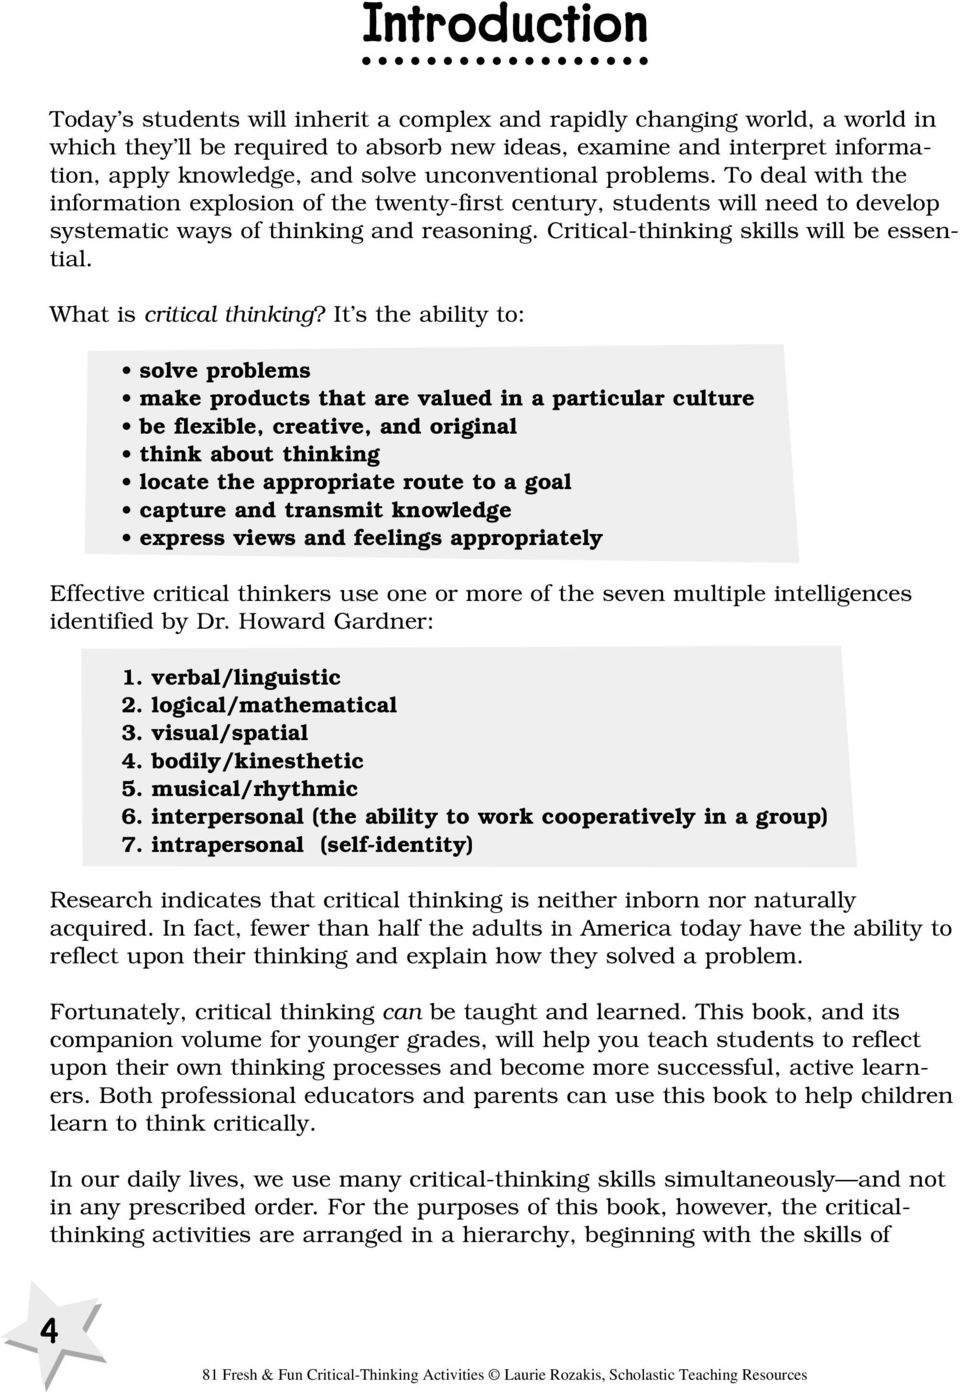 critical thinking activities adults